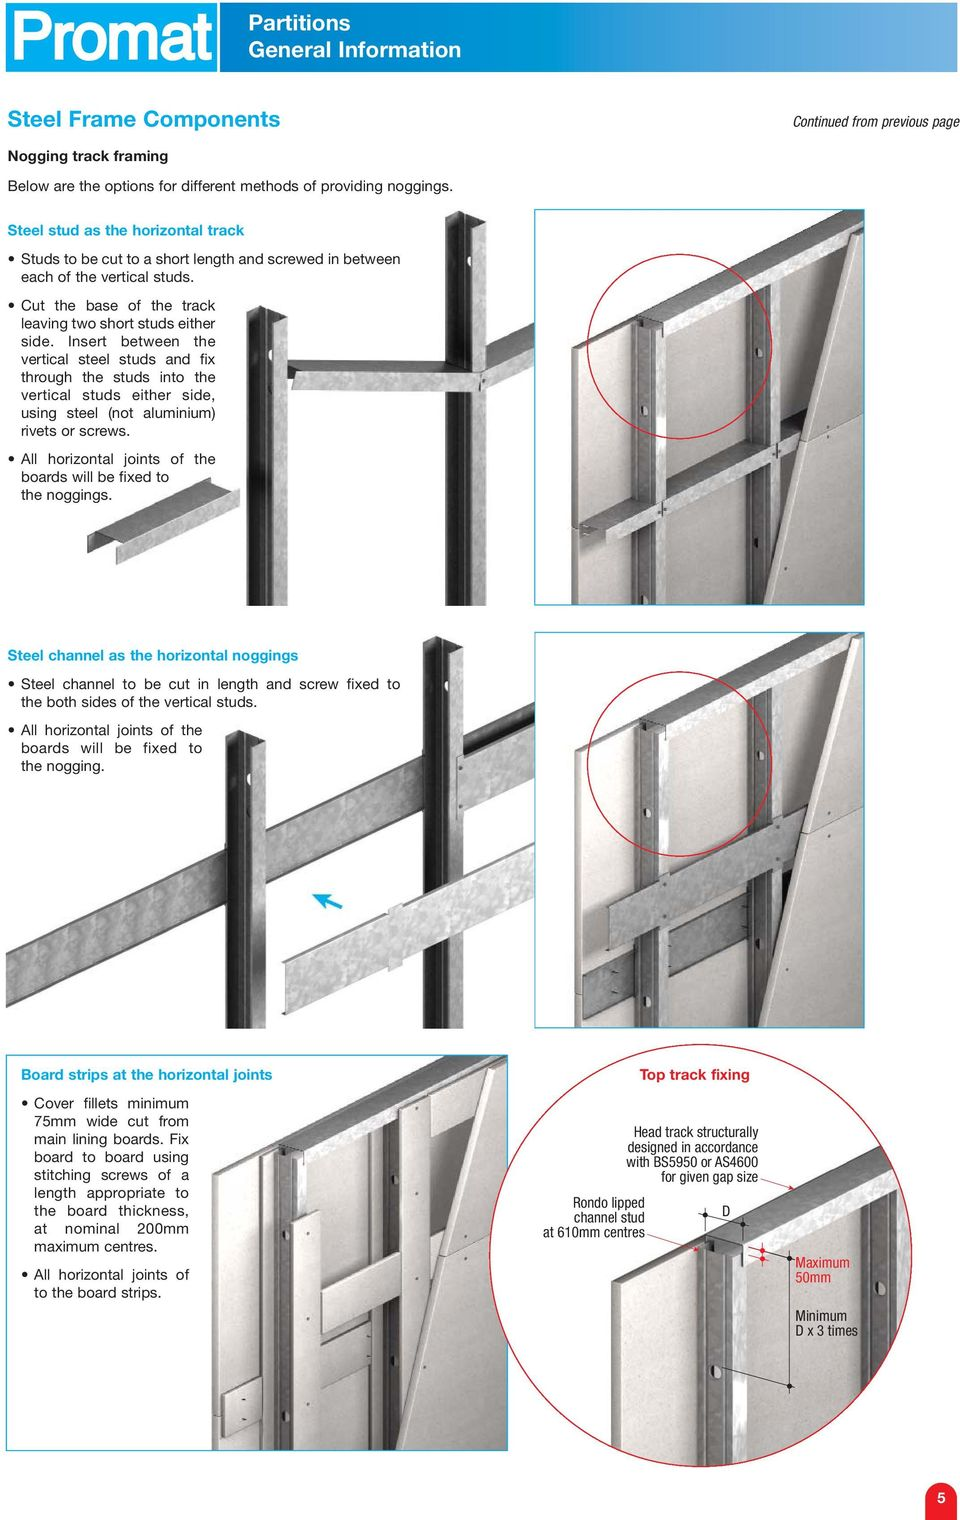 PROMATECT -H Single Layer Steel Stud Partitions - PDF